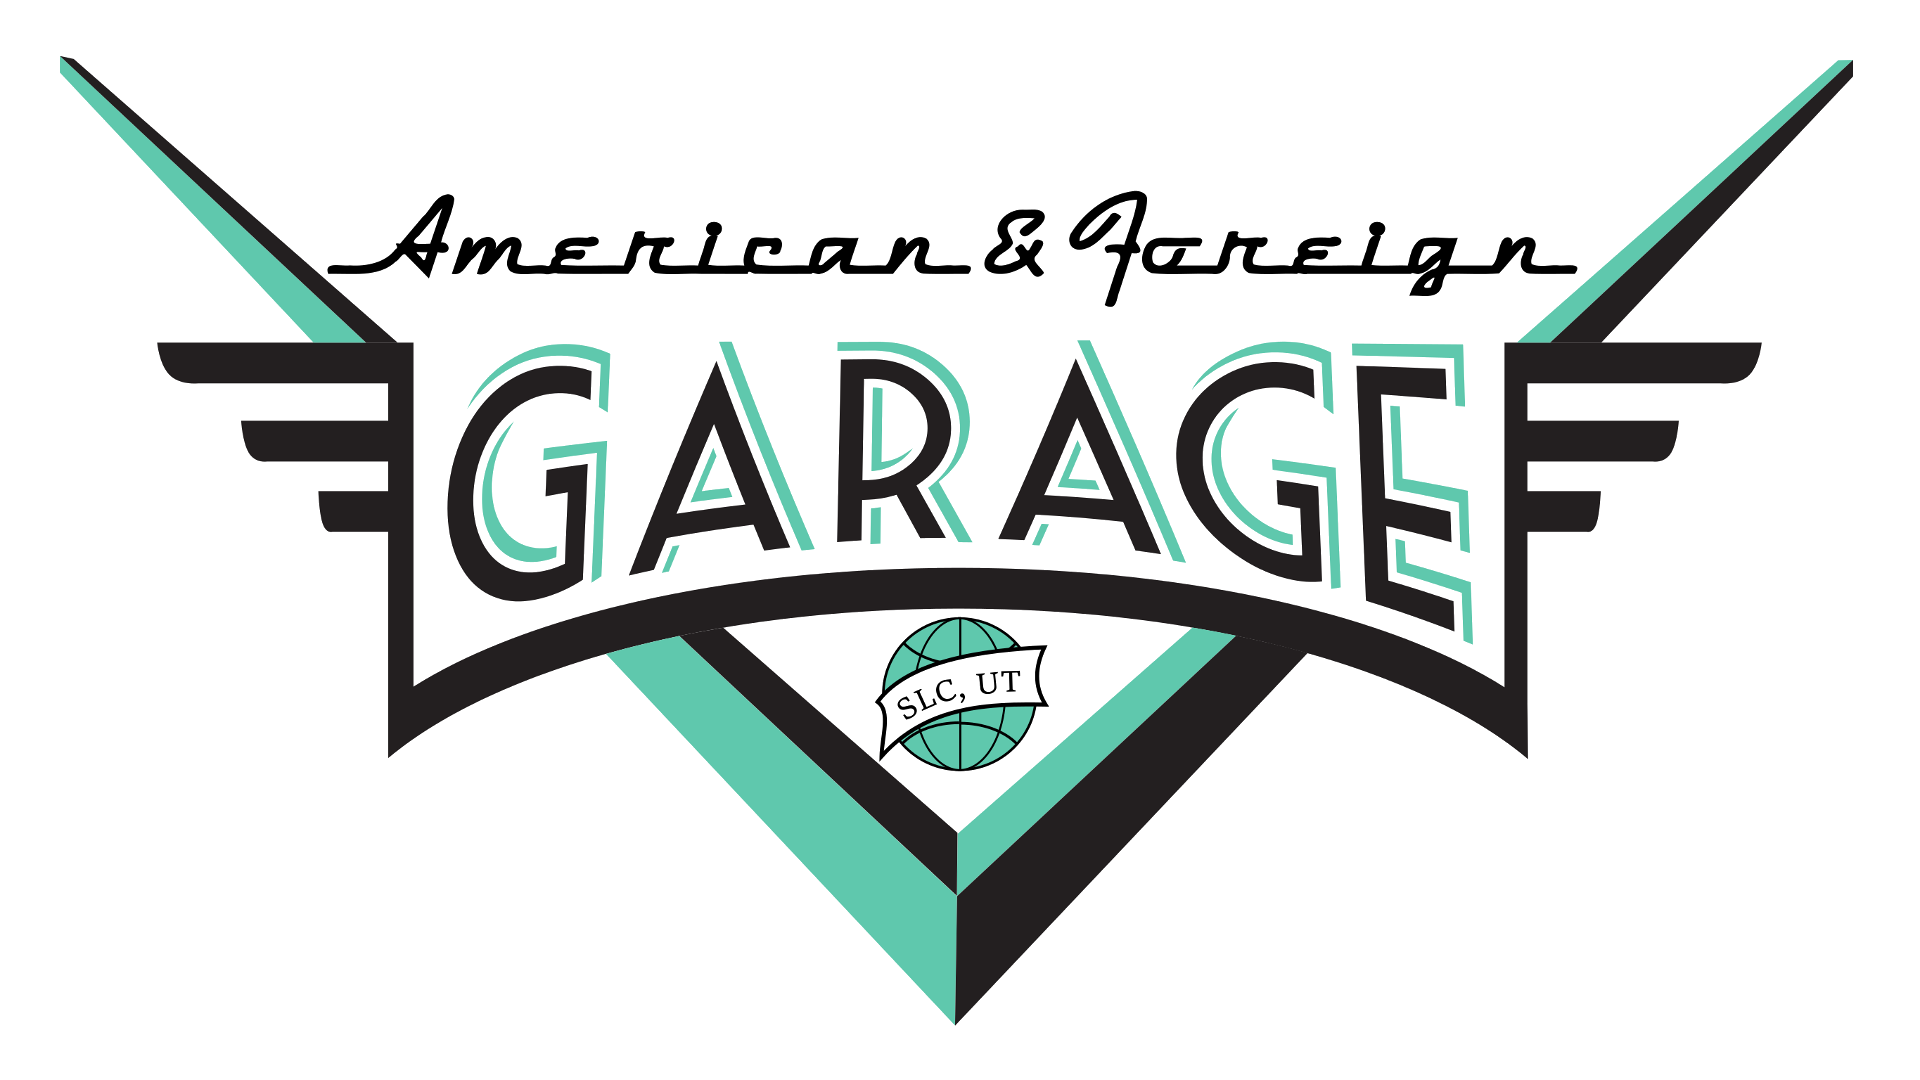 Garage logo clipart images gallery for free download.